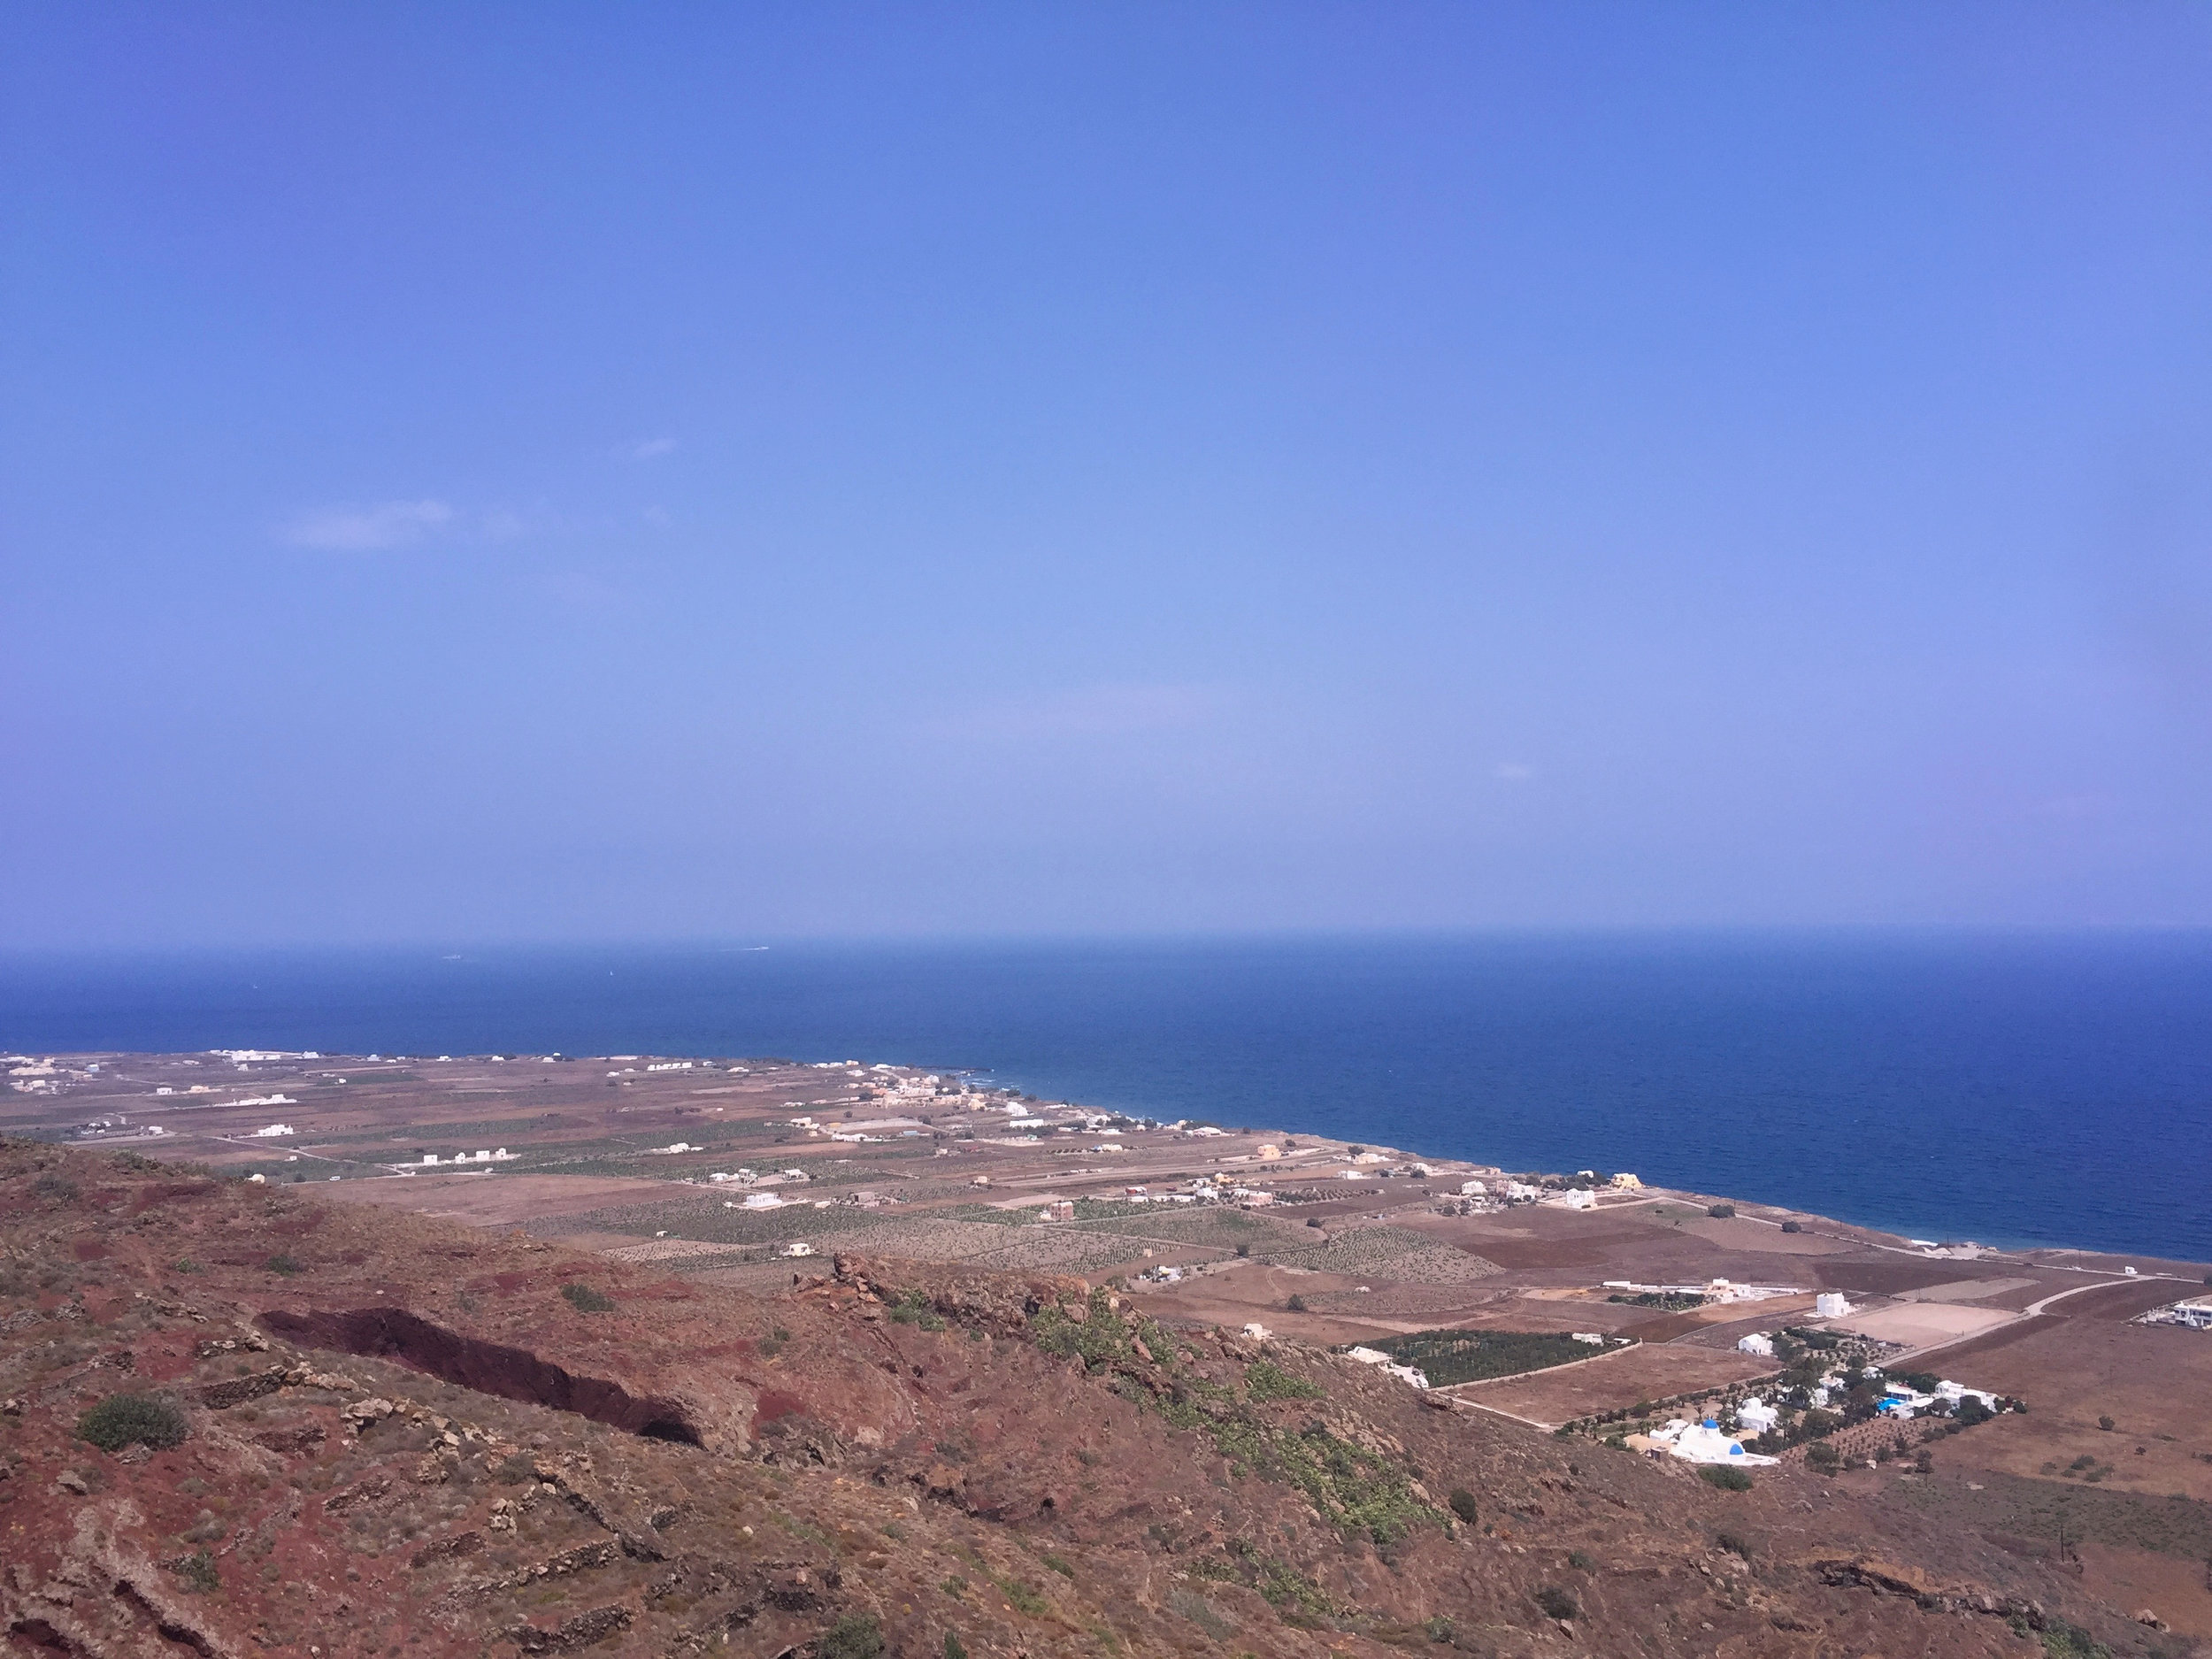 The bus trip from Oia to Fira showed us the back of the island that is used for farming.